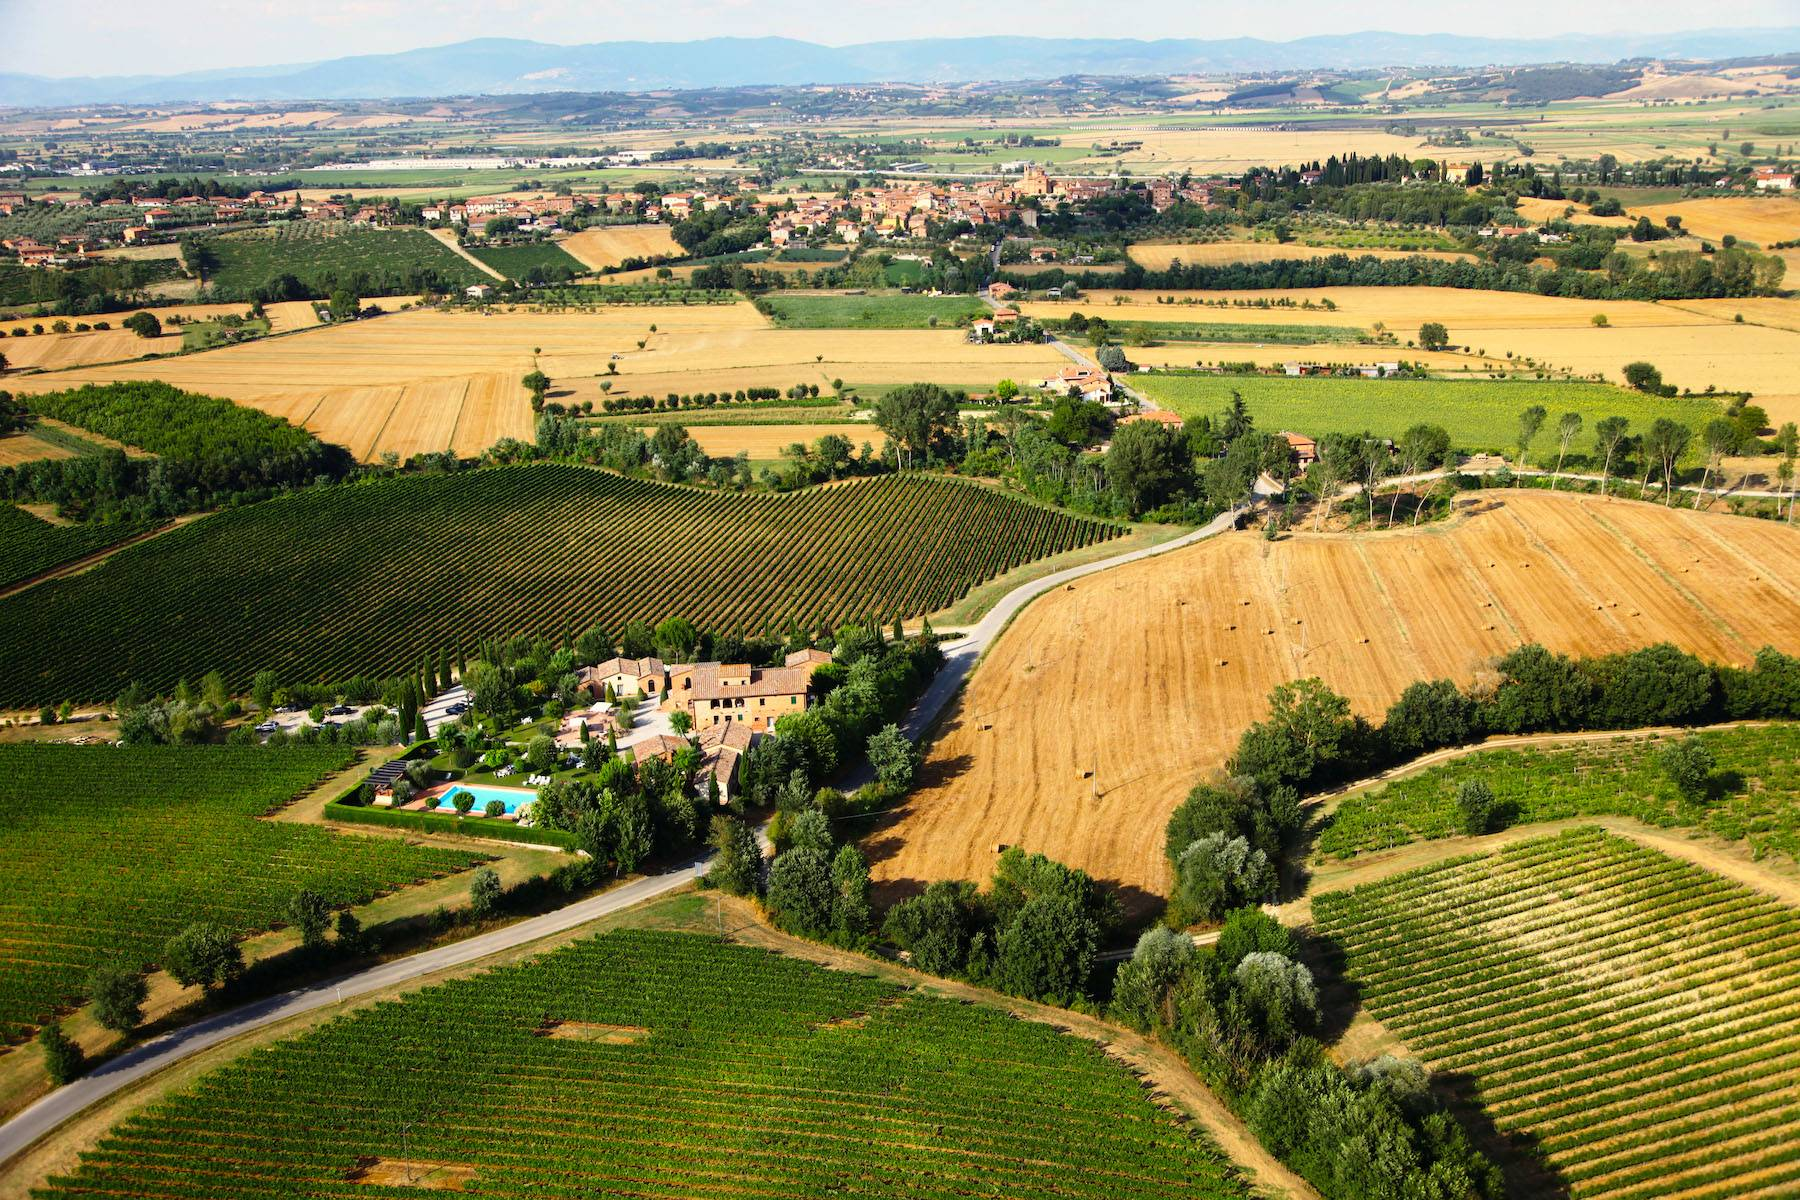 Property for Sale at Ancient farmhouse with pool in Montepulciano Montepulciano, Siena Italy